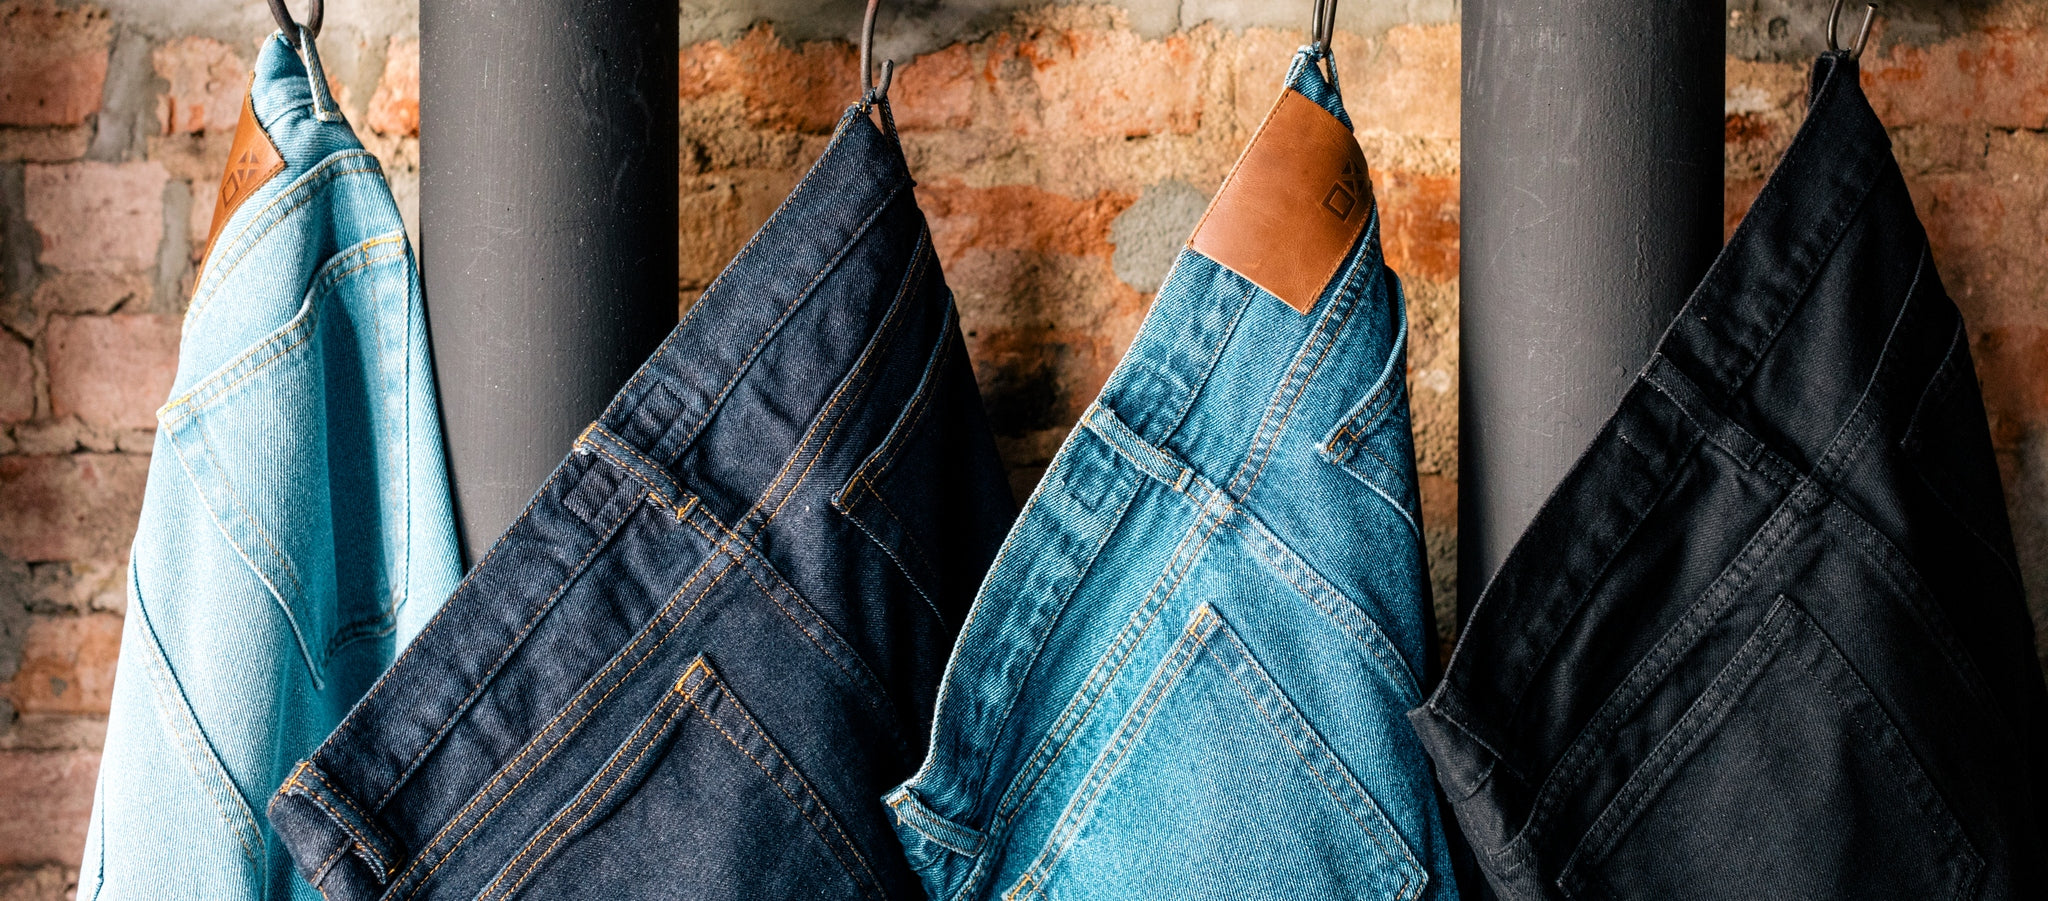 We offer quality denim jeans in 3 fits and 5 washes, and with inseams starting at 26 inches!